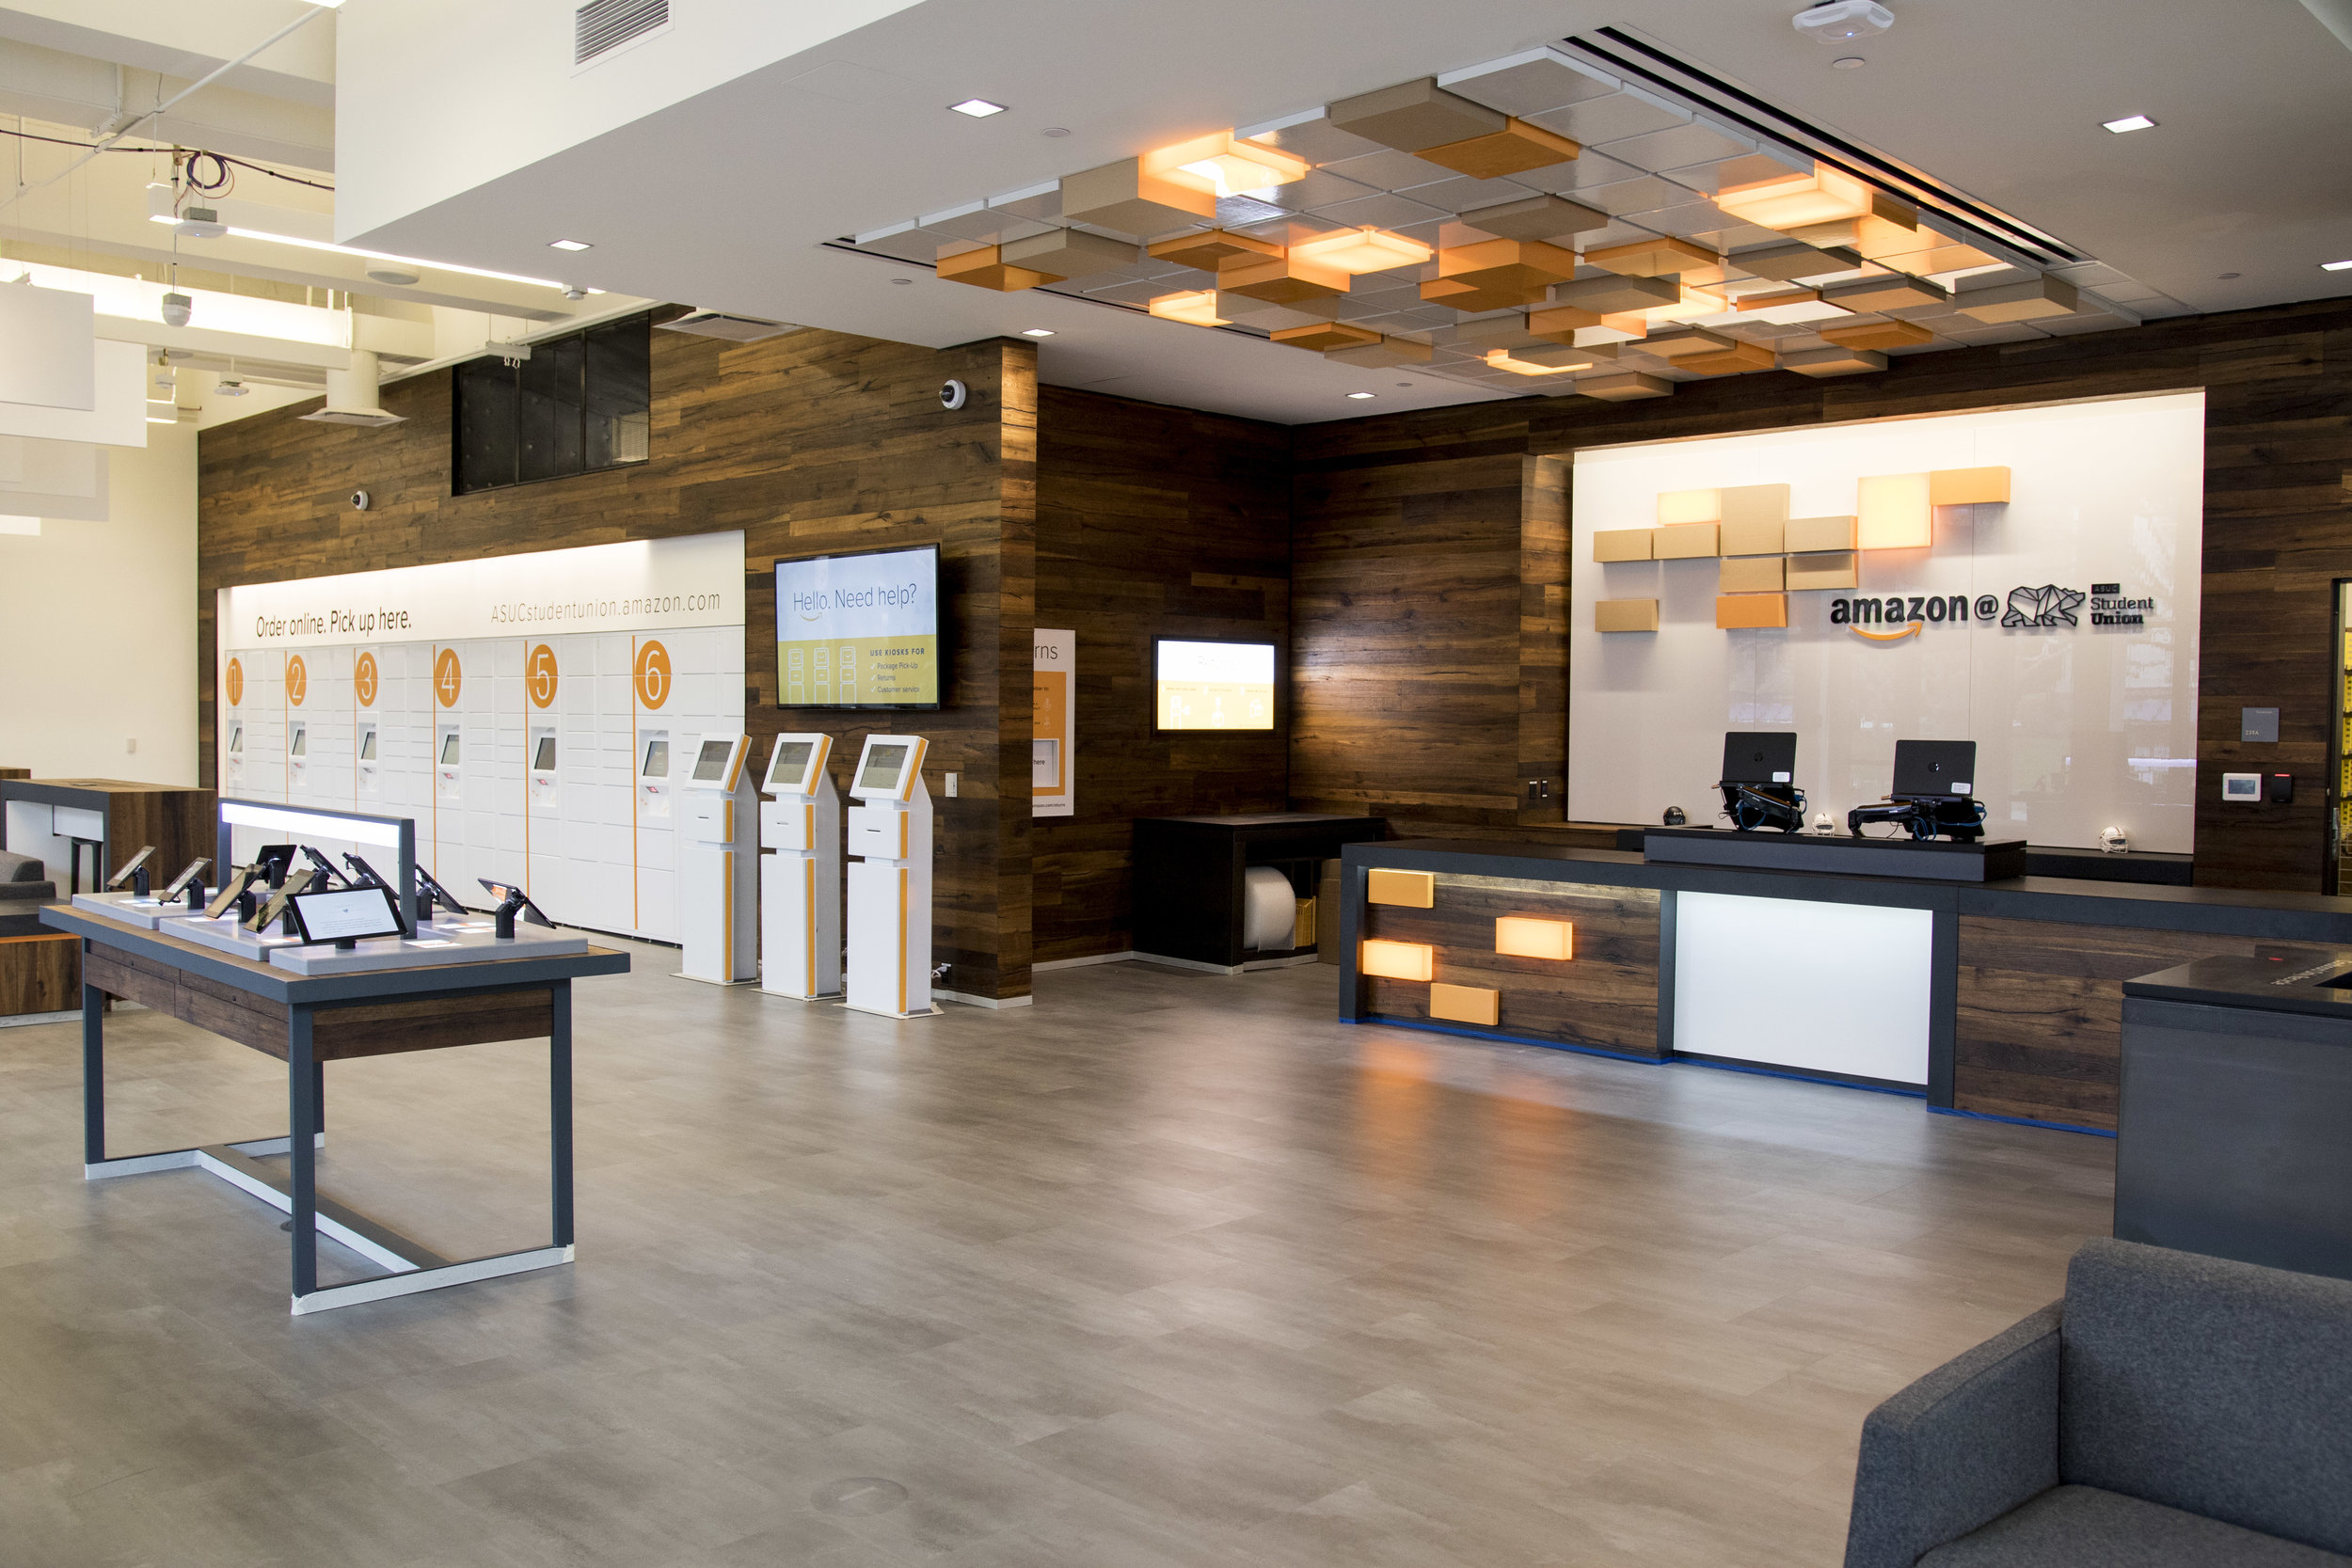 Amazon@ASUCStudentUnion interior shot published  here .